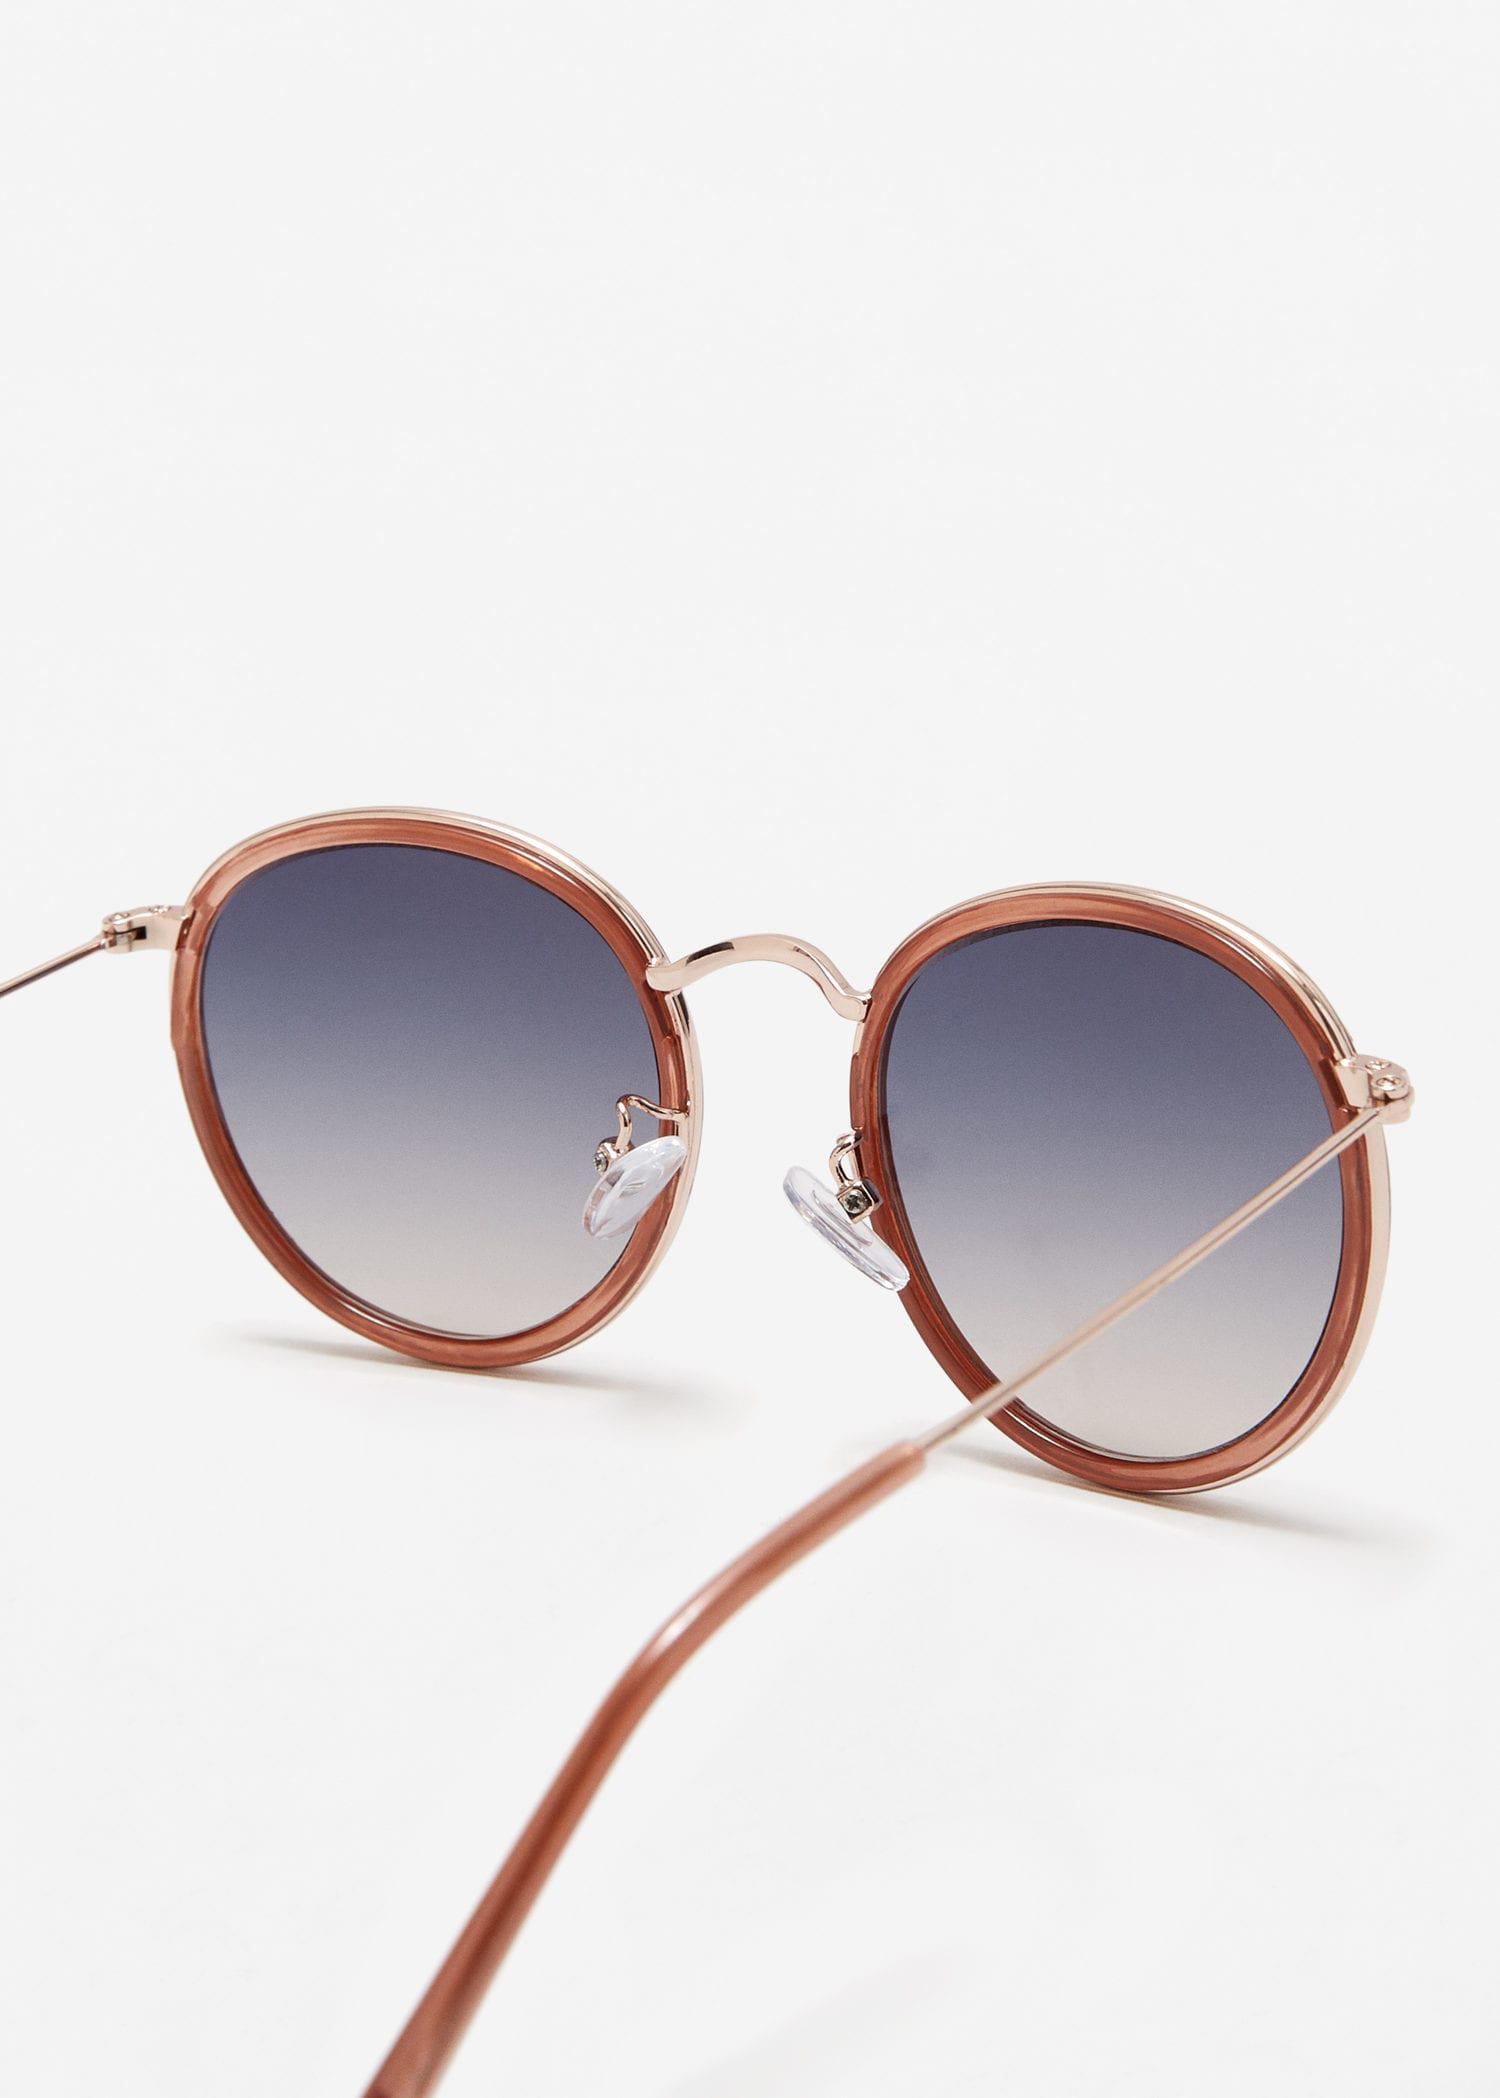 Mango Contrasting Sunglasses in Pink